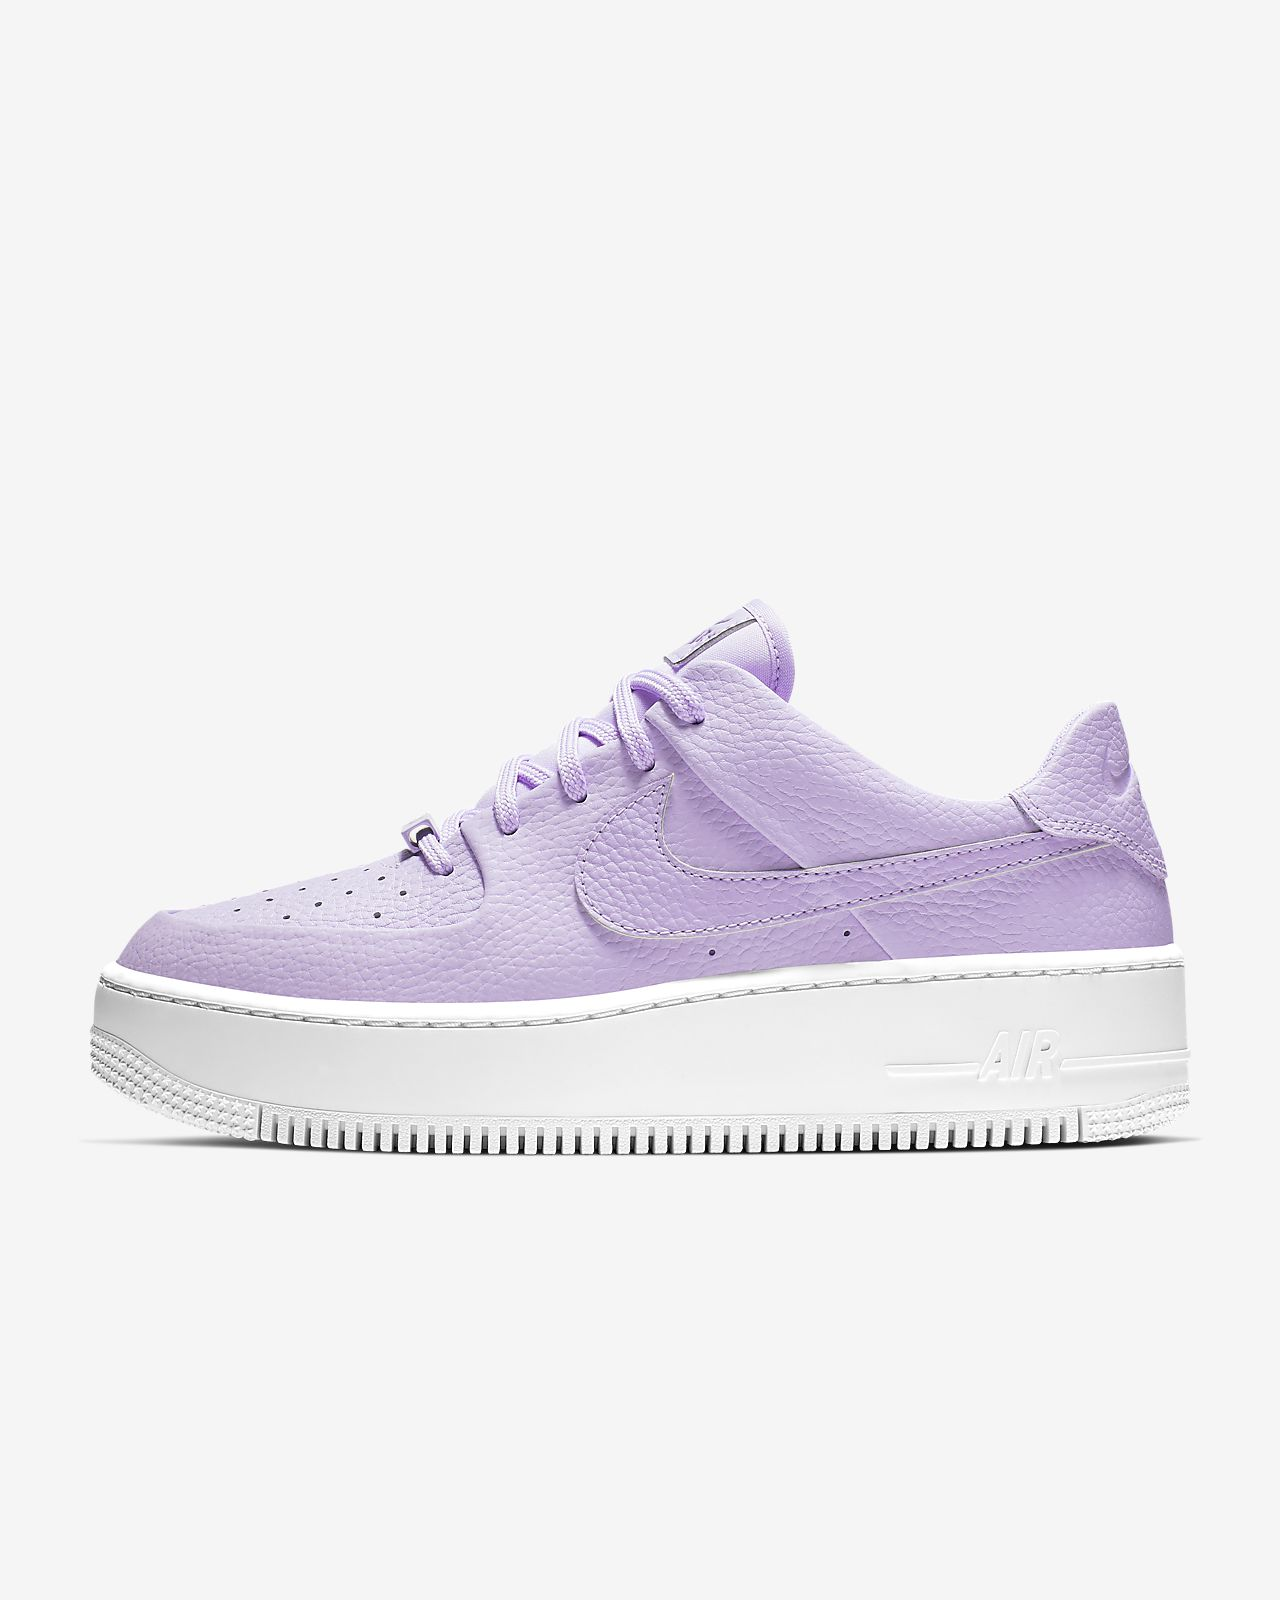 lowest price a4d4a d77d6 ... Nike Air Force 1 Sage Low-sko til kvinder